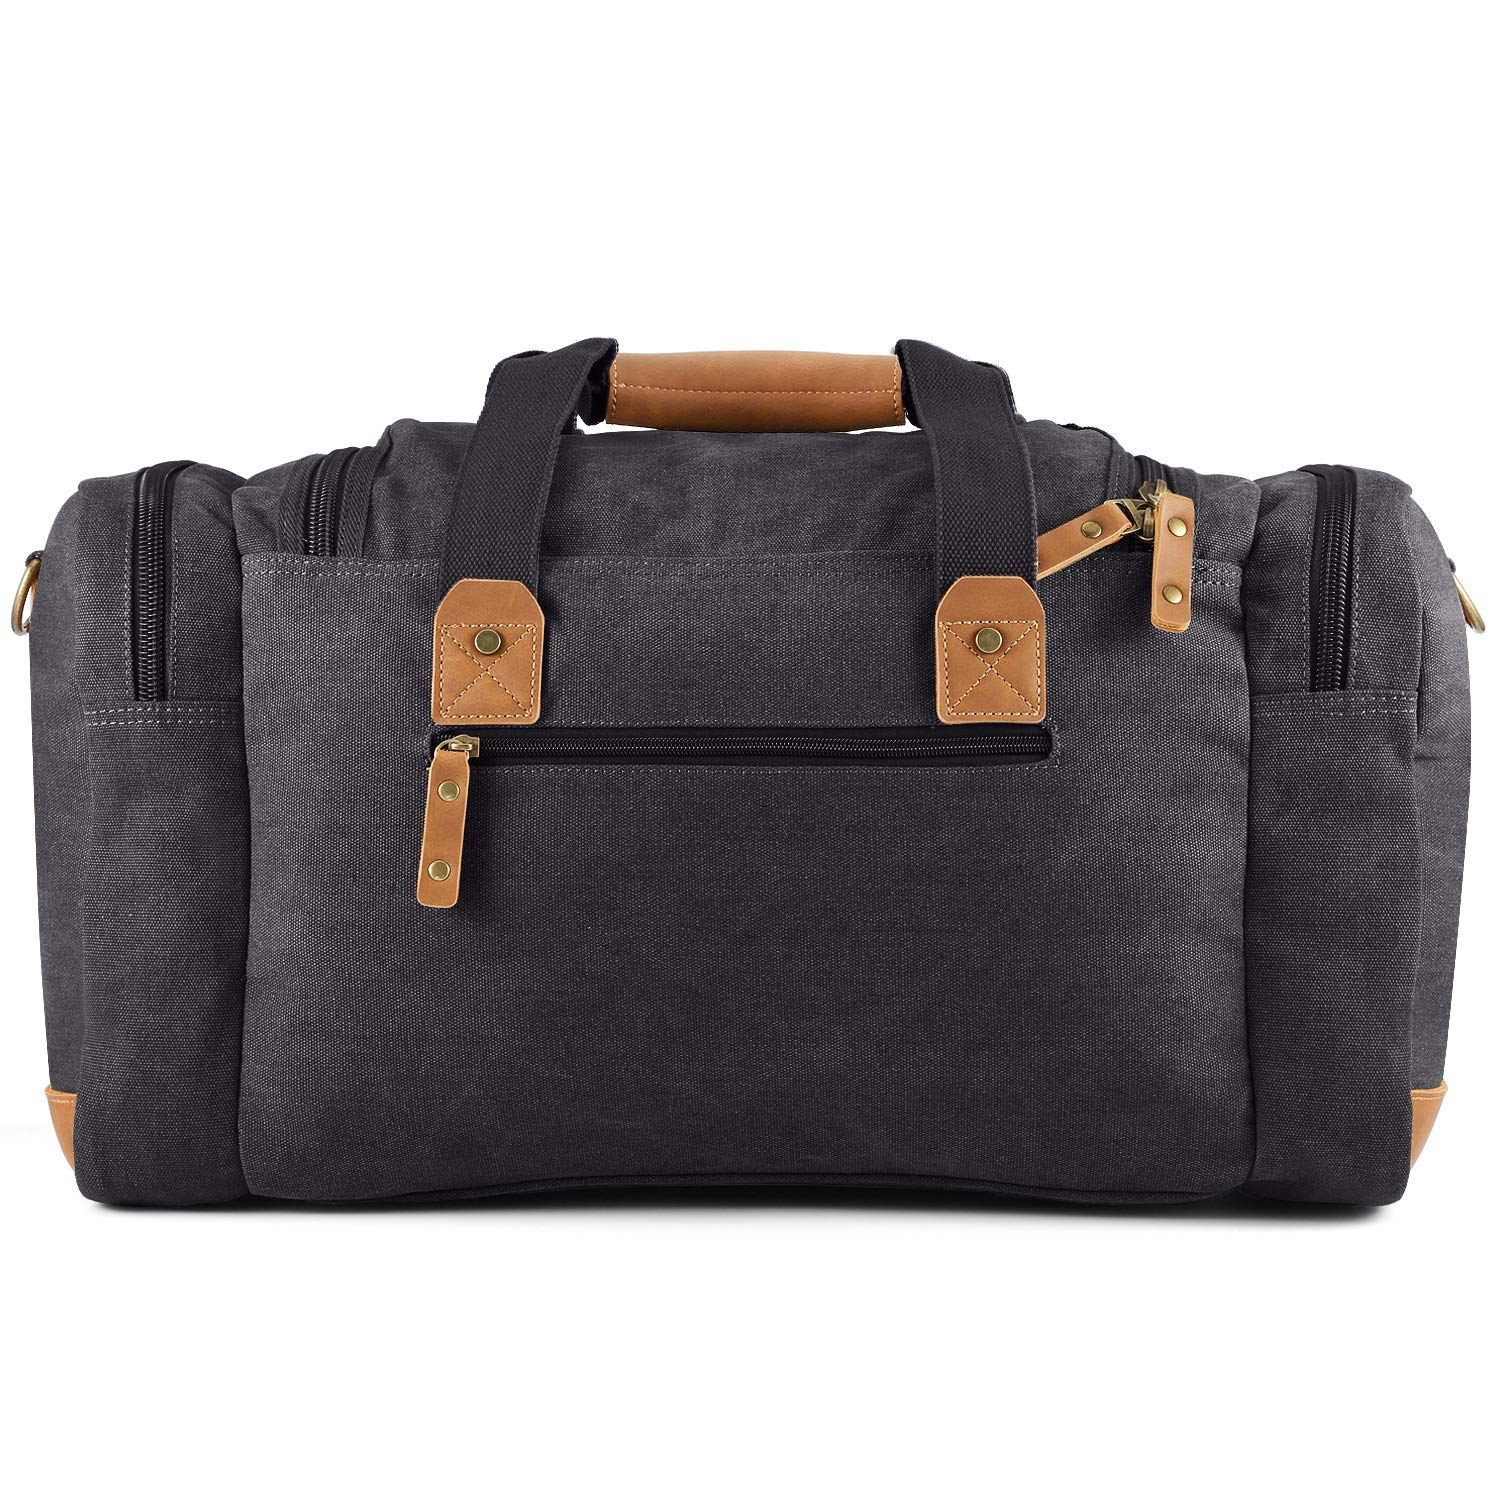 Canvas Luggage Oversized Duffel Bag Overnight Travel Tote Weekend Bag for Men and Women Dark Grey